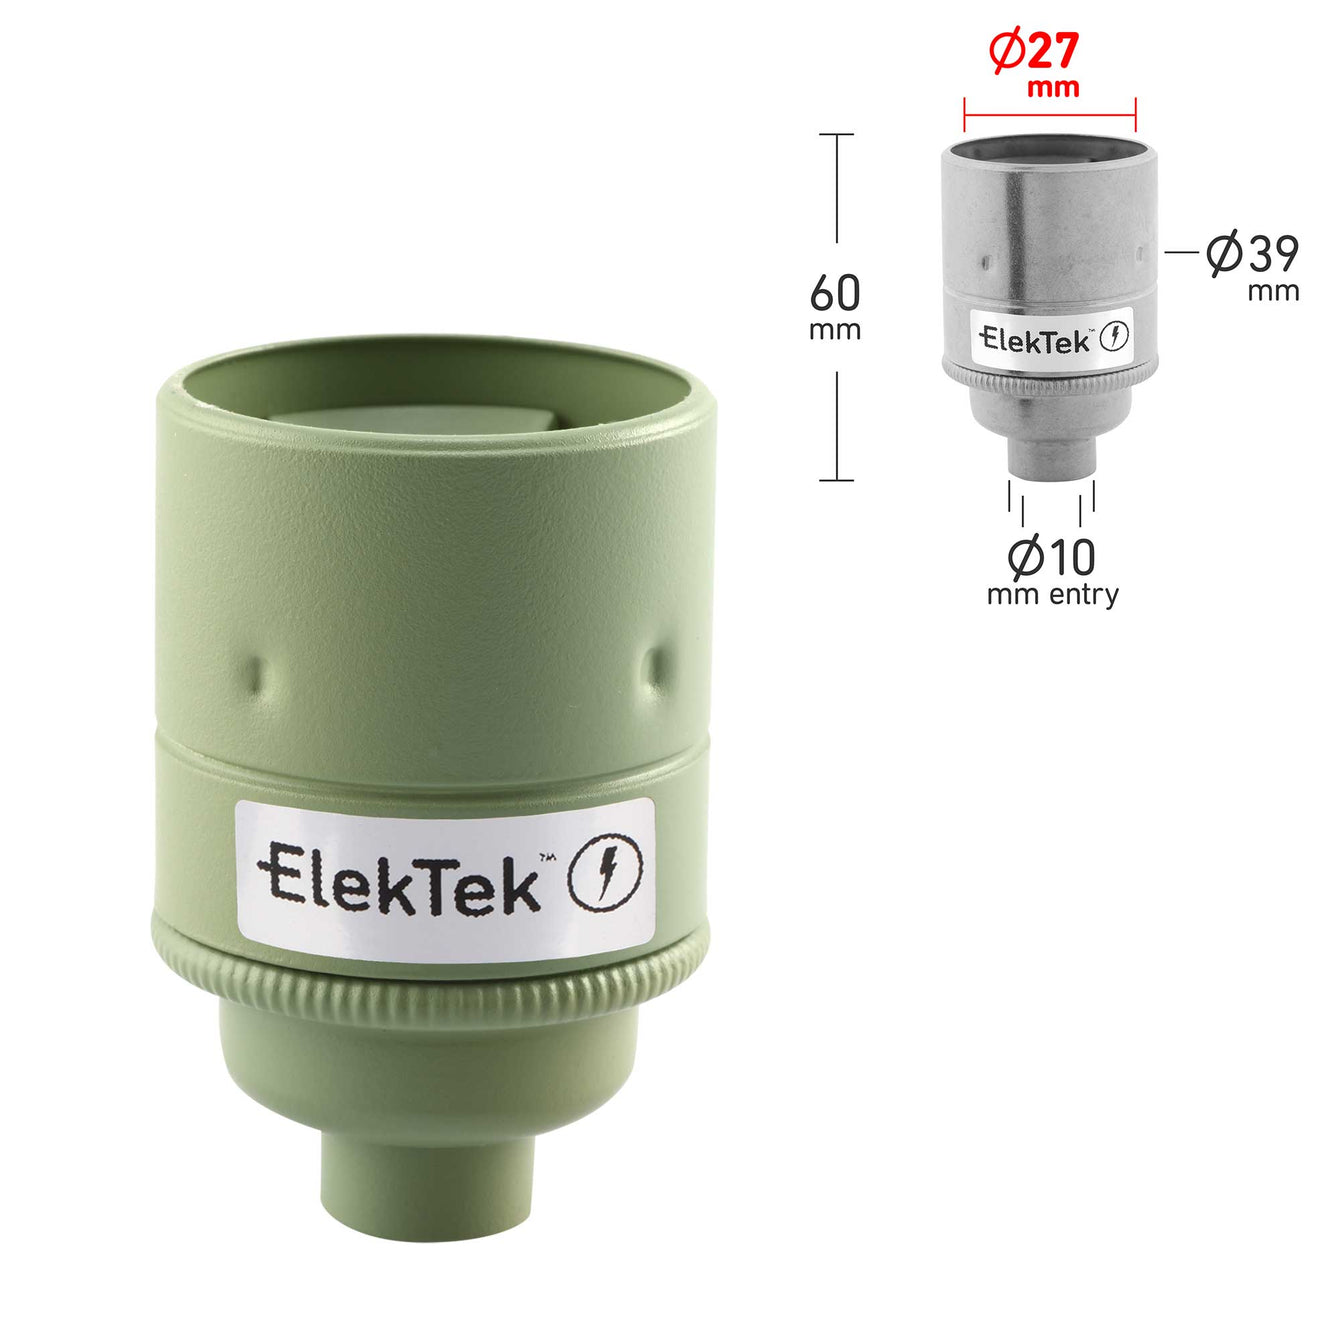 ElekTek ES Edison Screw E27 Lamp Holder Plain Skirt 10mm or Half Inch Entry Ideal for Vintage Filament Bulbs Brass - Buy It Better Willow Green / 10mm